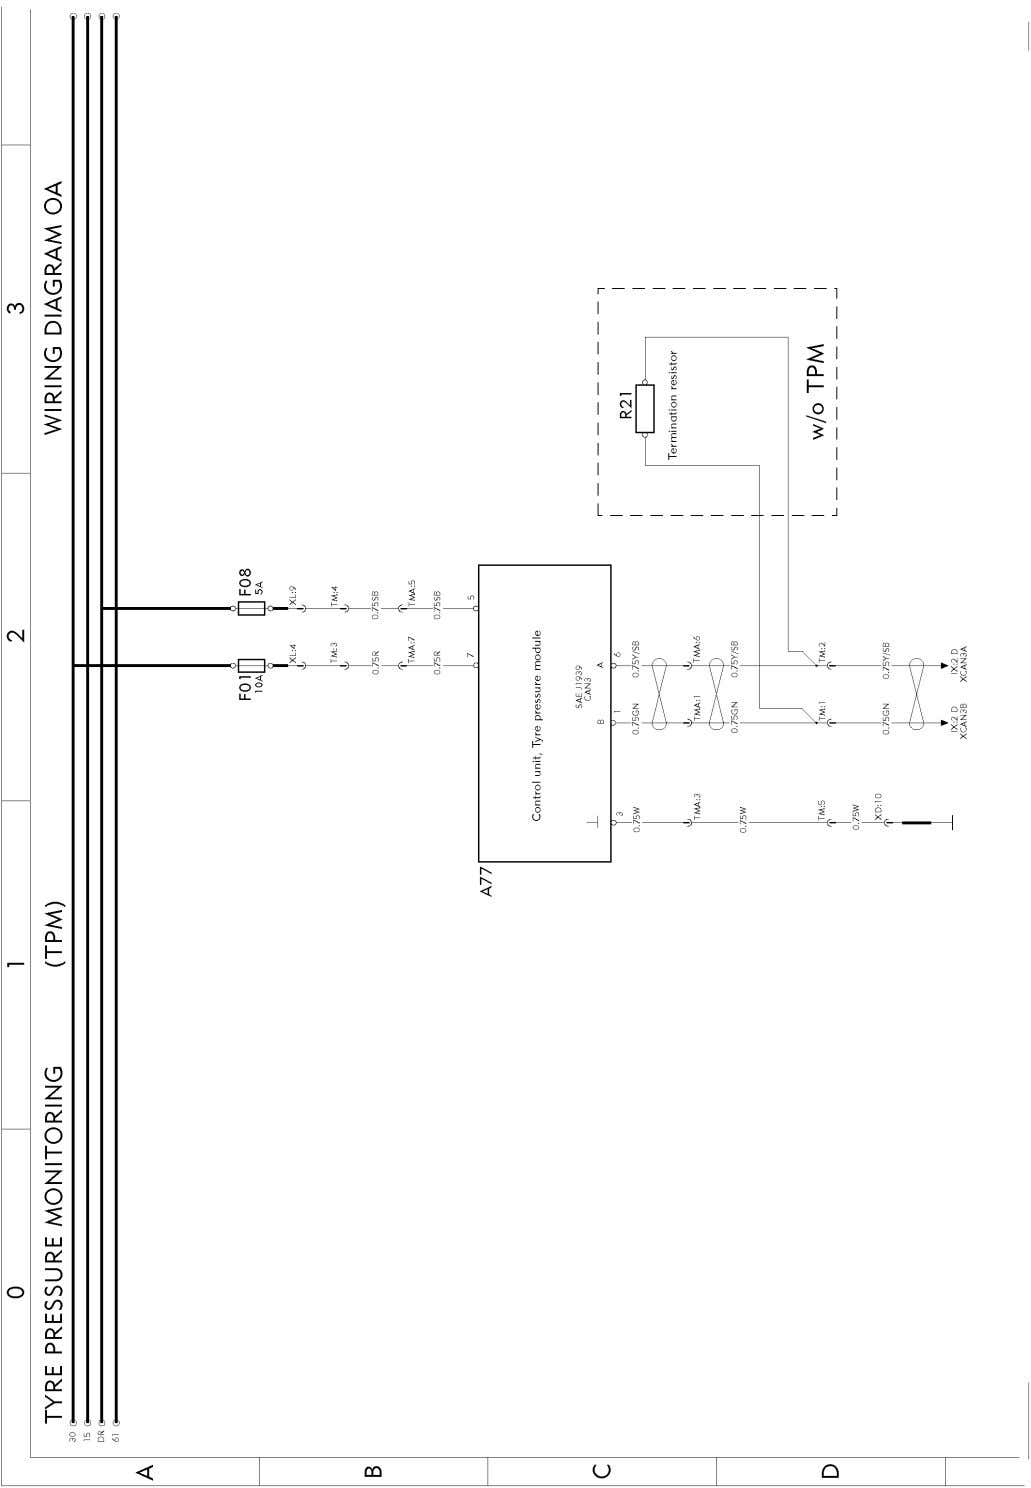 T3019273 Wiring diagram Page 117 (298)